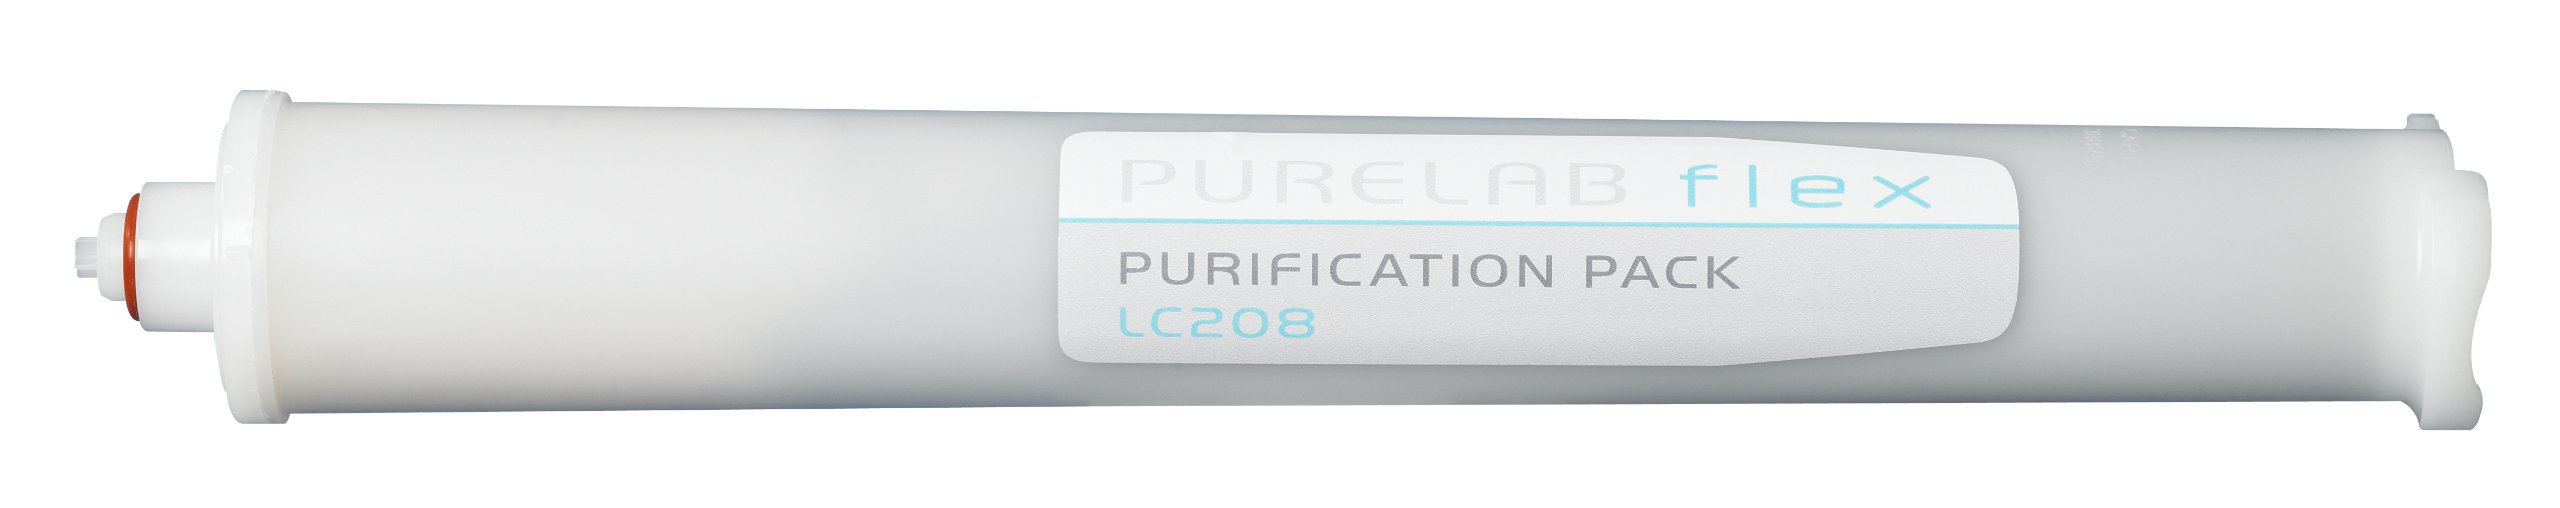 Elga LC208 Purification Cartridge, For Purelab by Elga